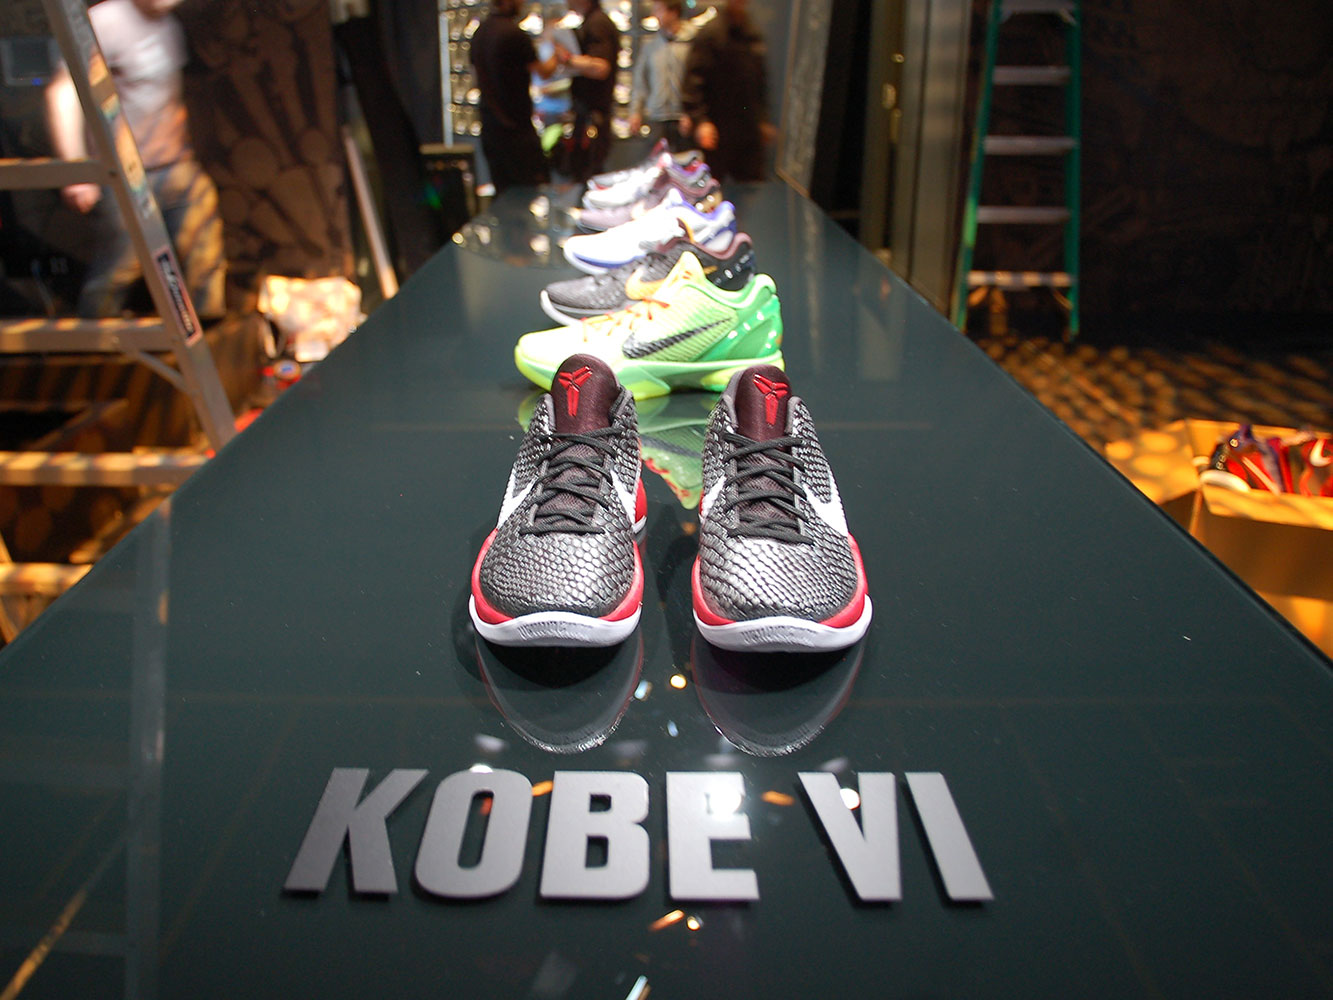 Kobe-Nike-Product-Placement